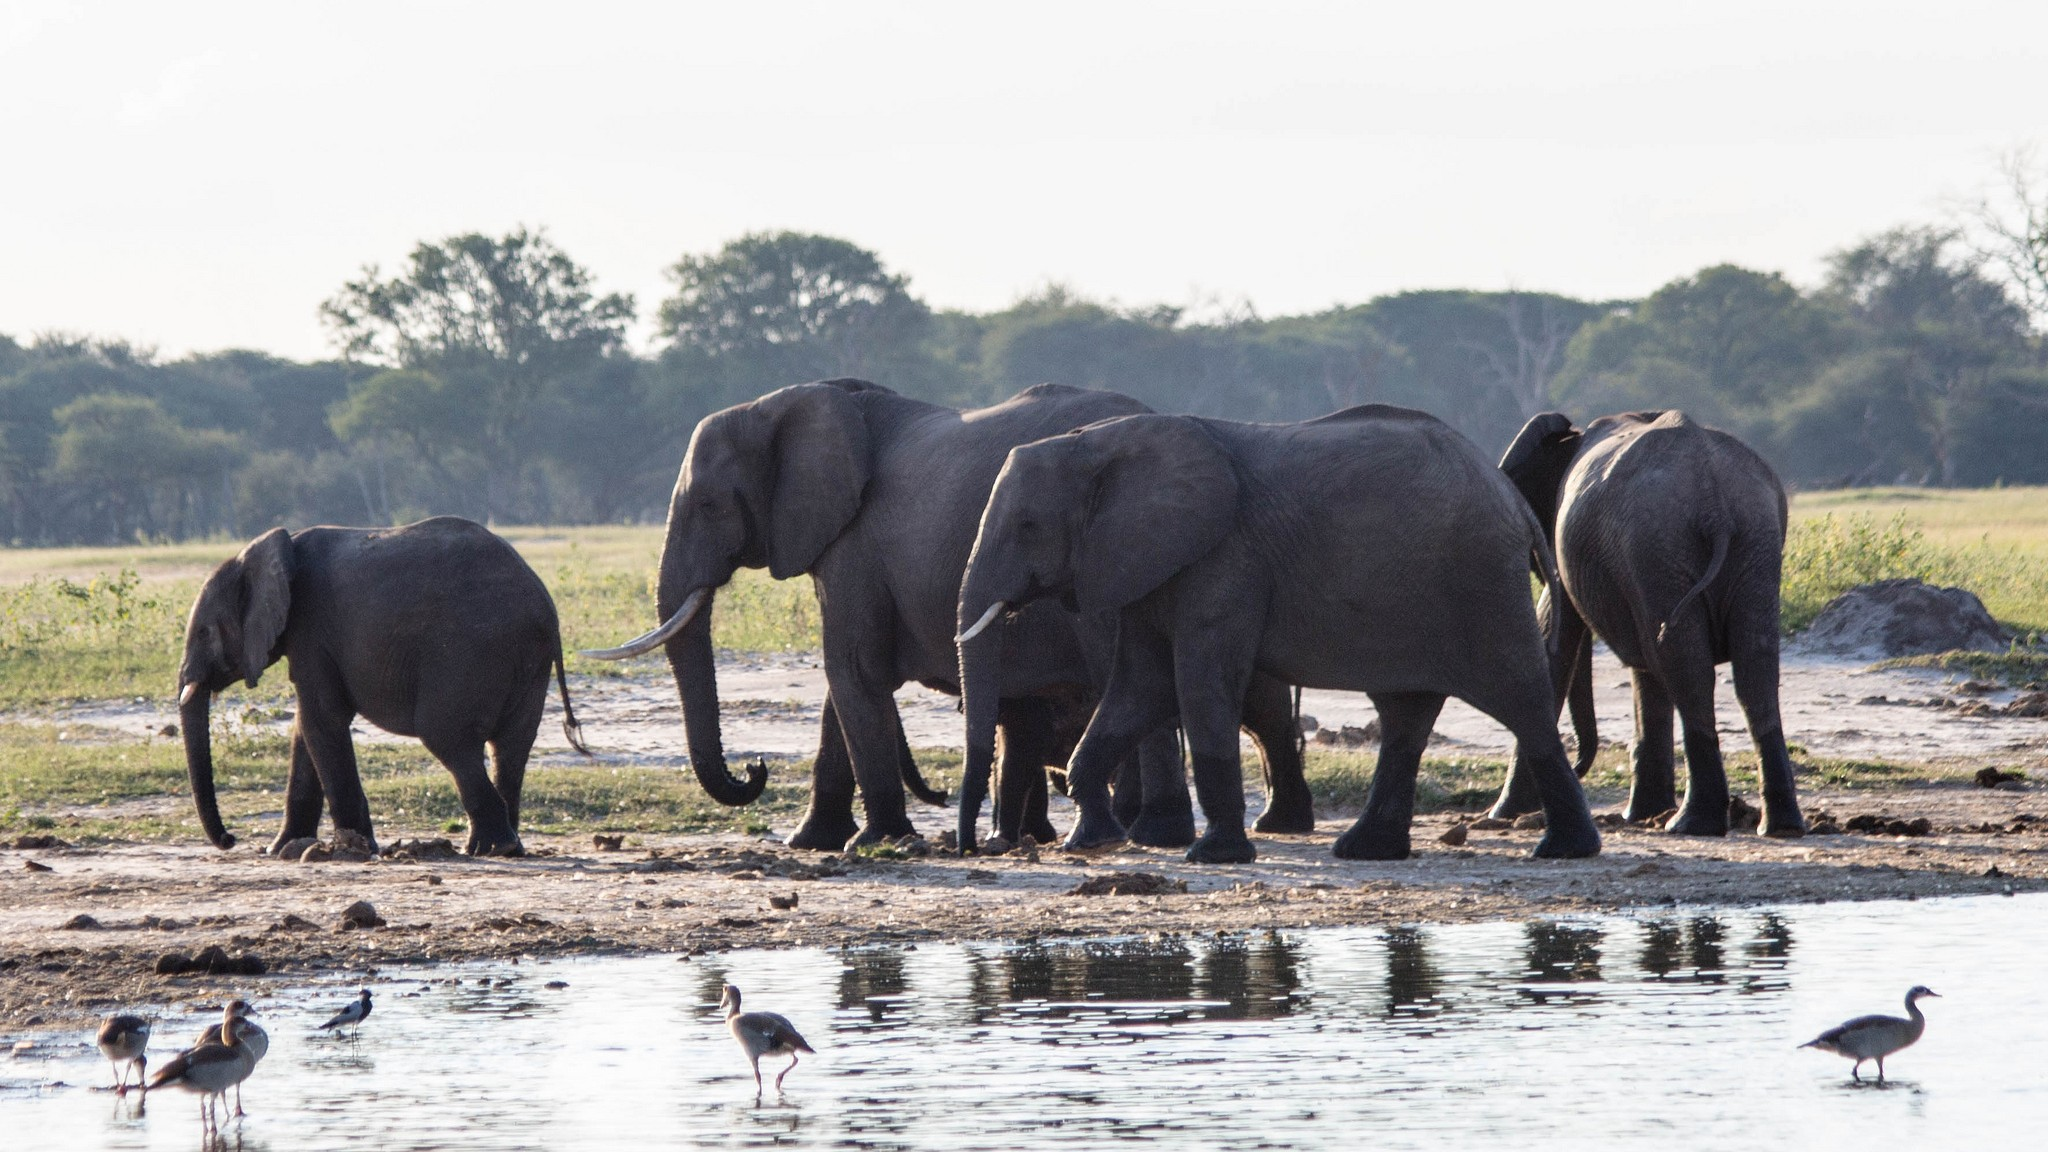 Poachers Are Using Cyanide to Slaughter Entire Elephant Herds